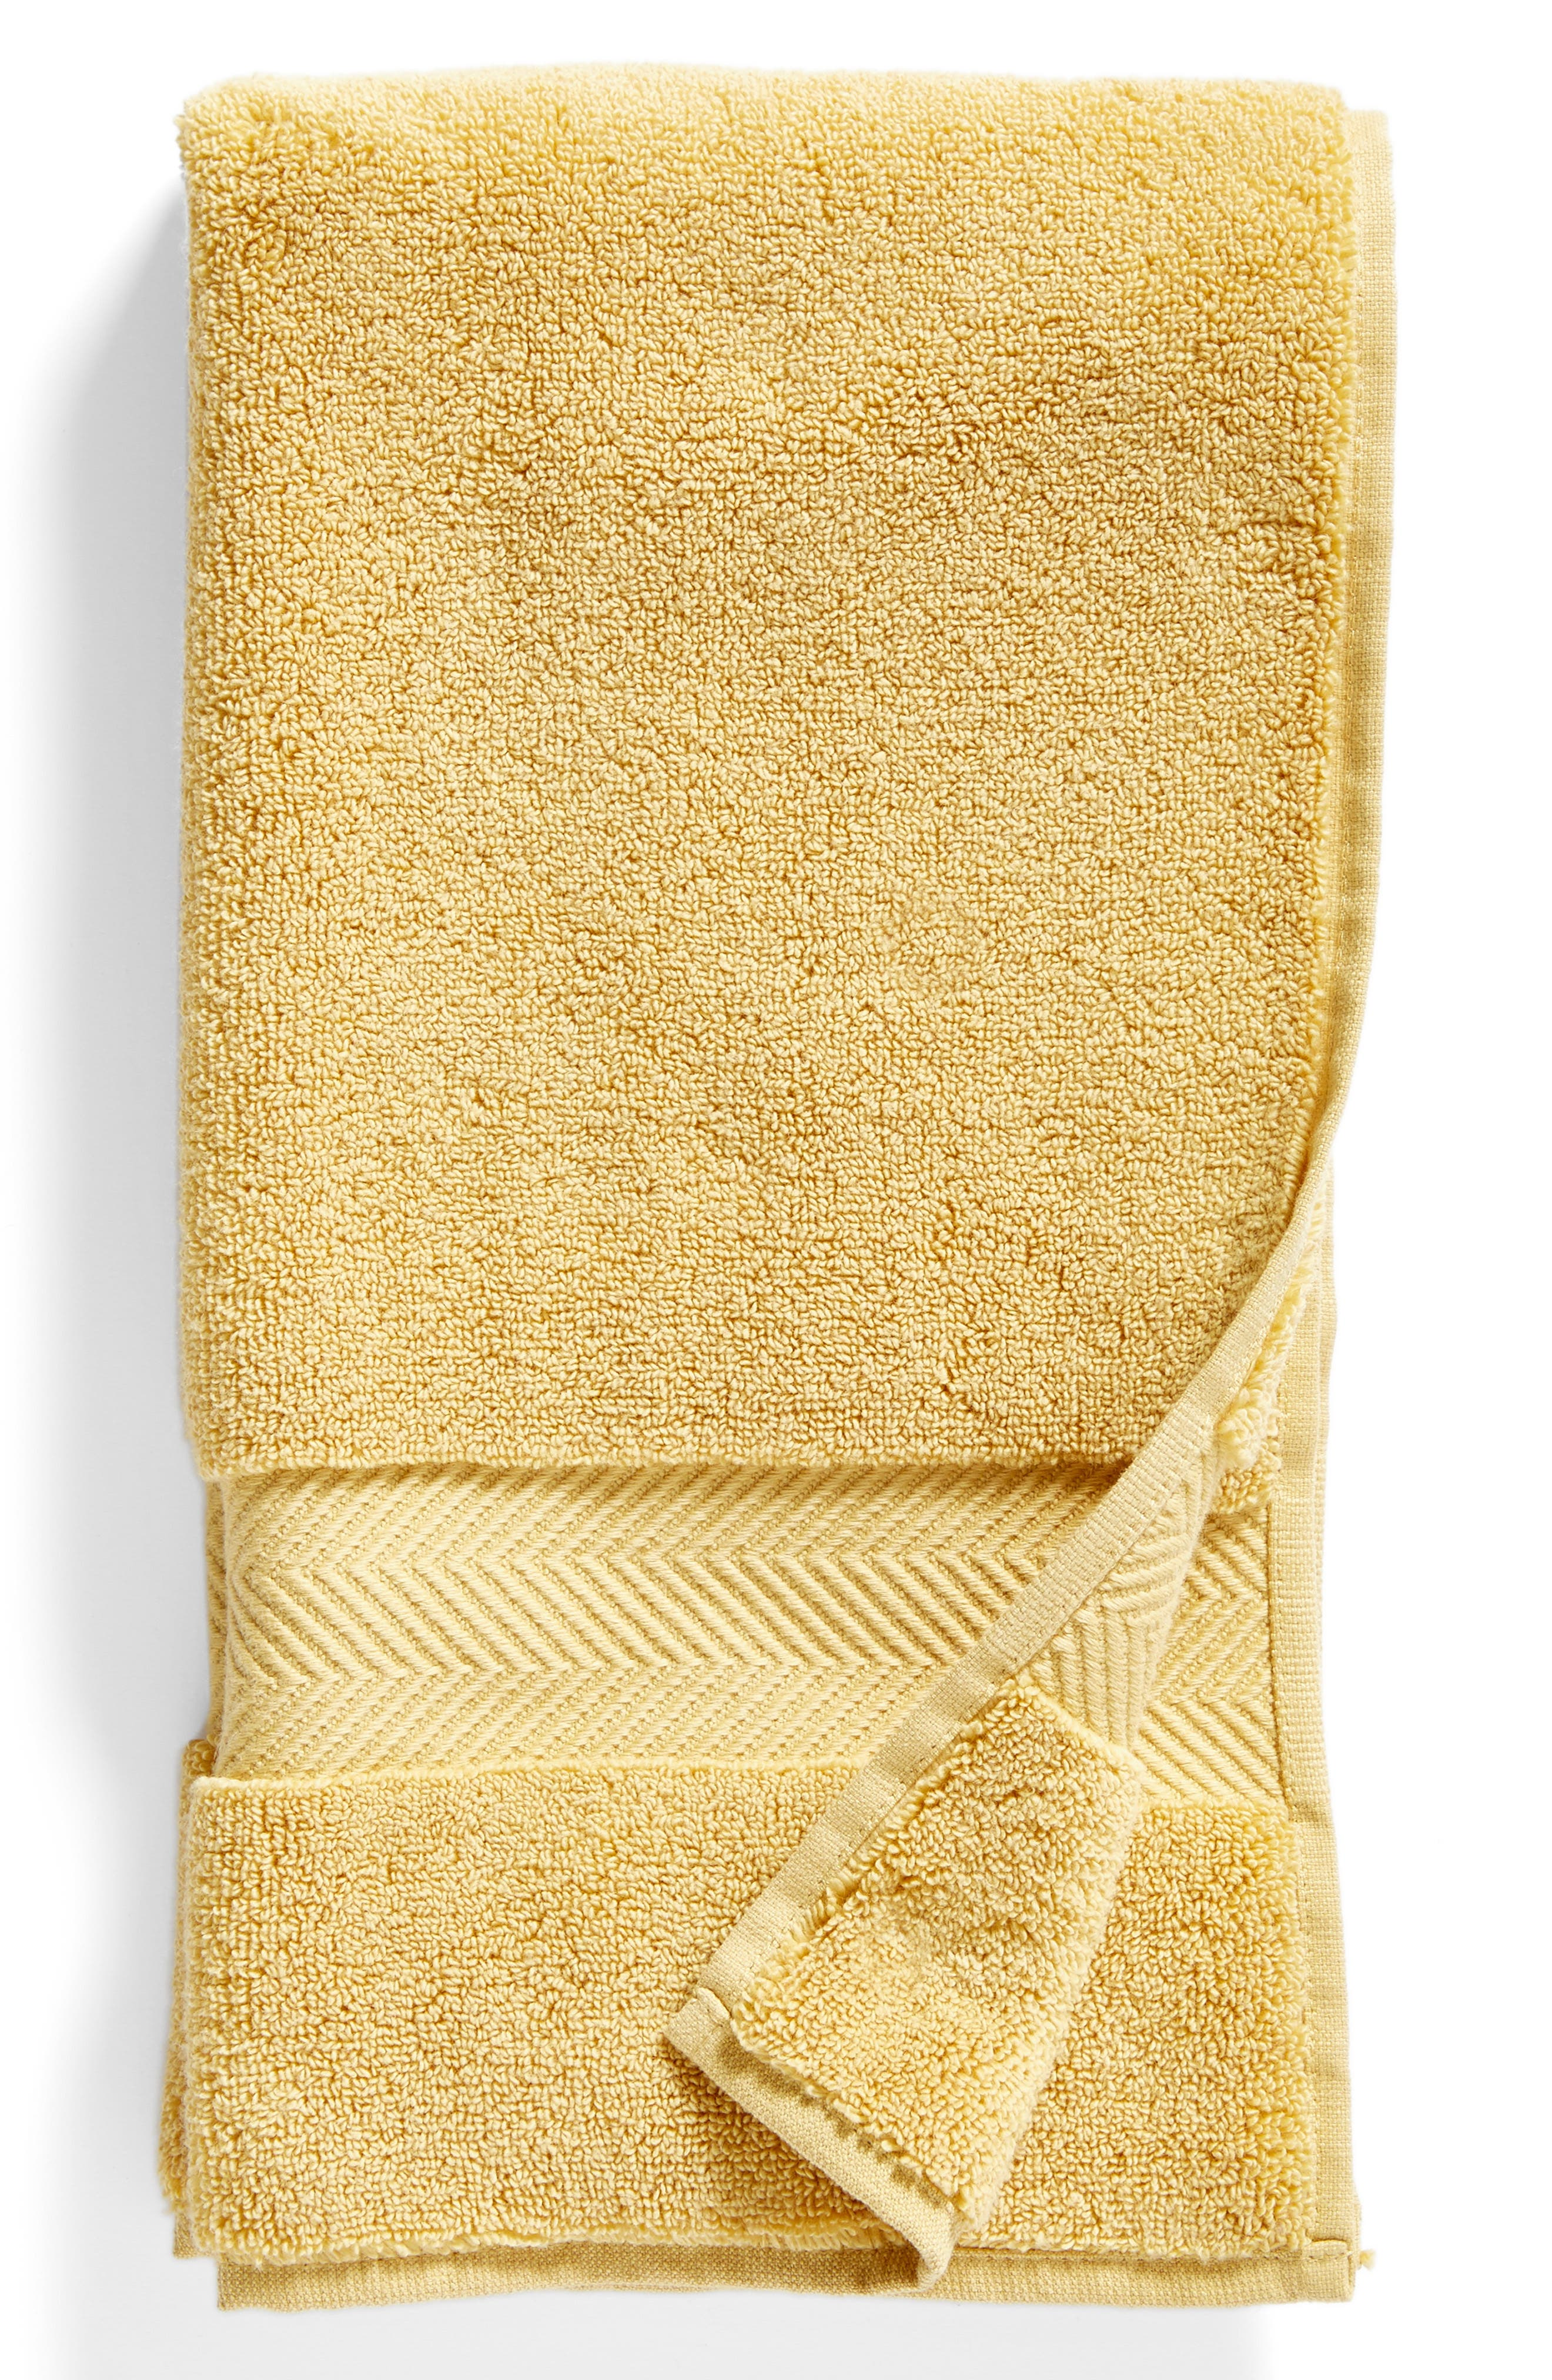 Nordstrom at Home Hydrocotton Hand Towel